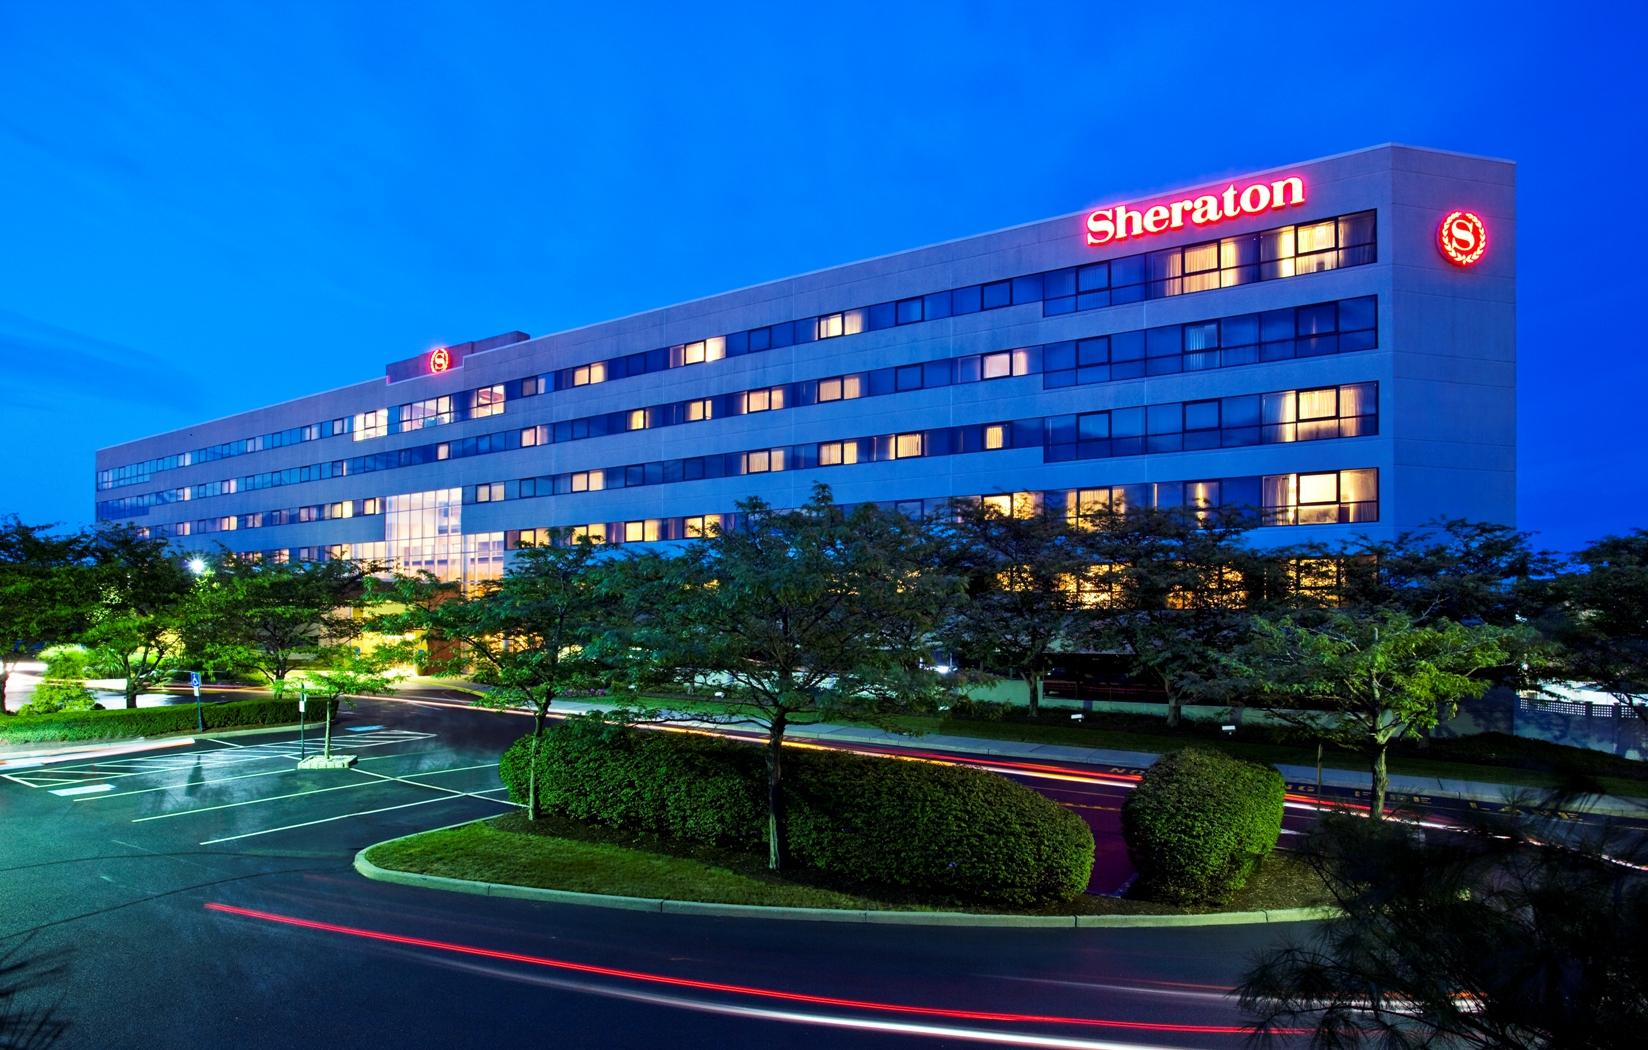 sheraton hotel Sheraton hotels is the second oldest brand of hotels belonging to the starwood hotels and resorts, westin being the oldest starwood's headquarters are in.